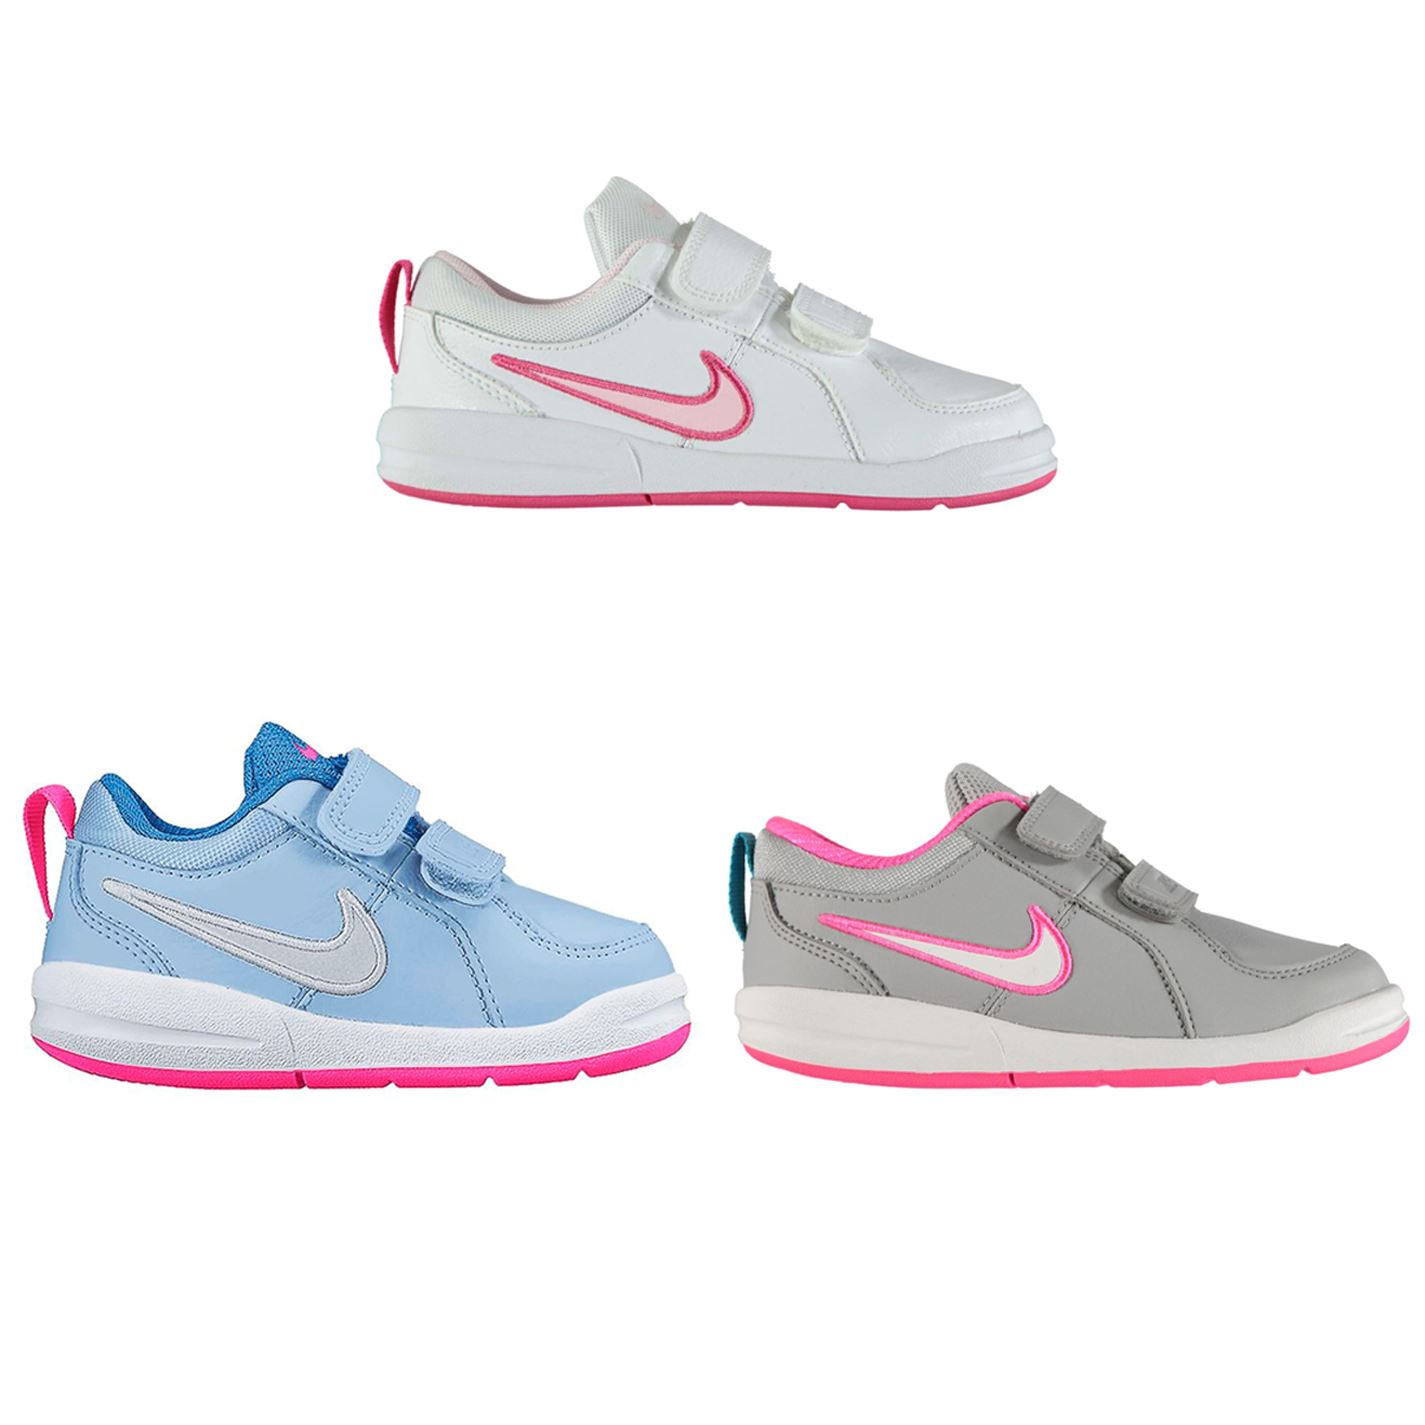 to buy 599ca d4ed5 ... Nike Pico 4 Infant Girls Trainers Shoes Footwear ...